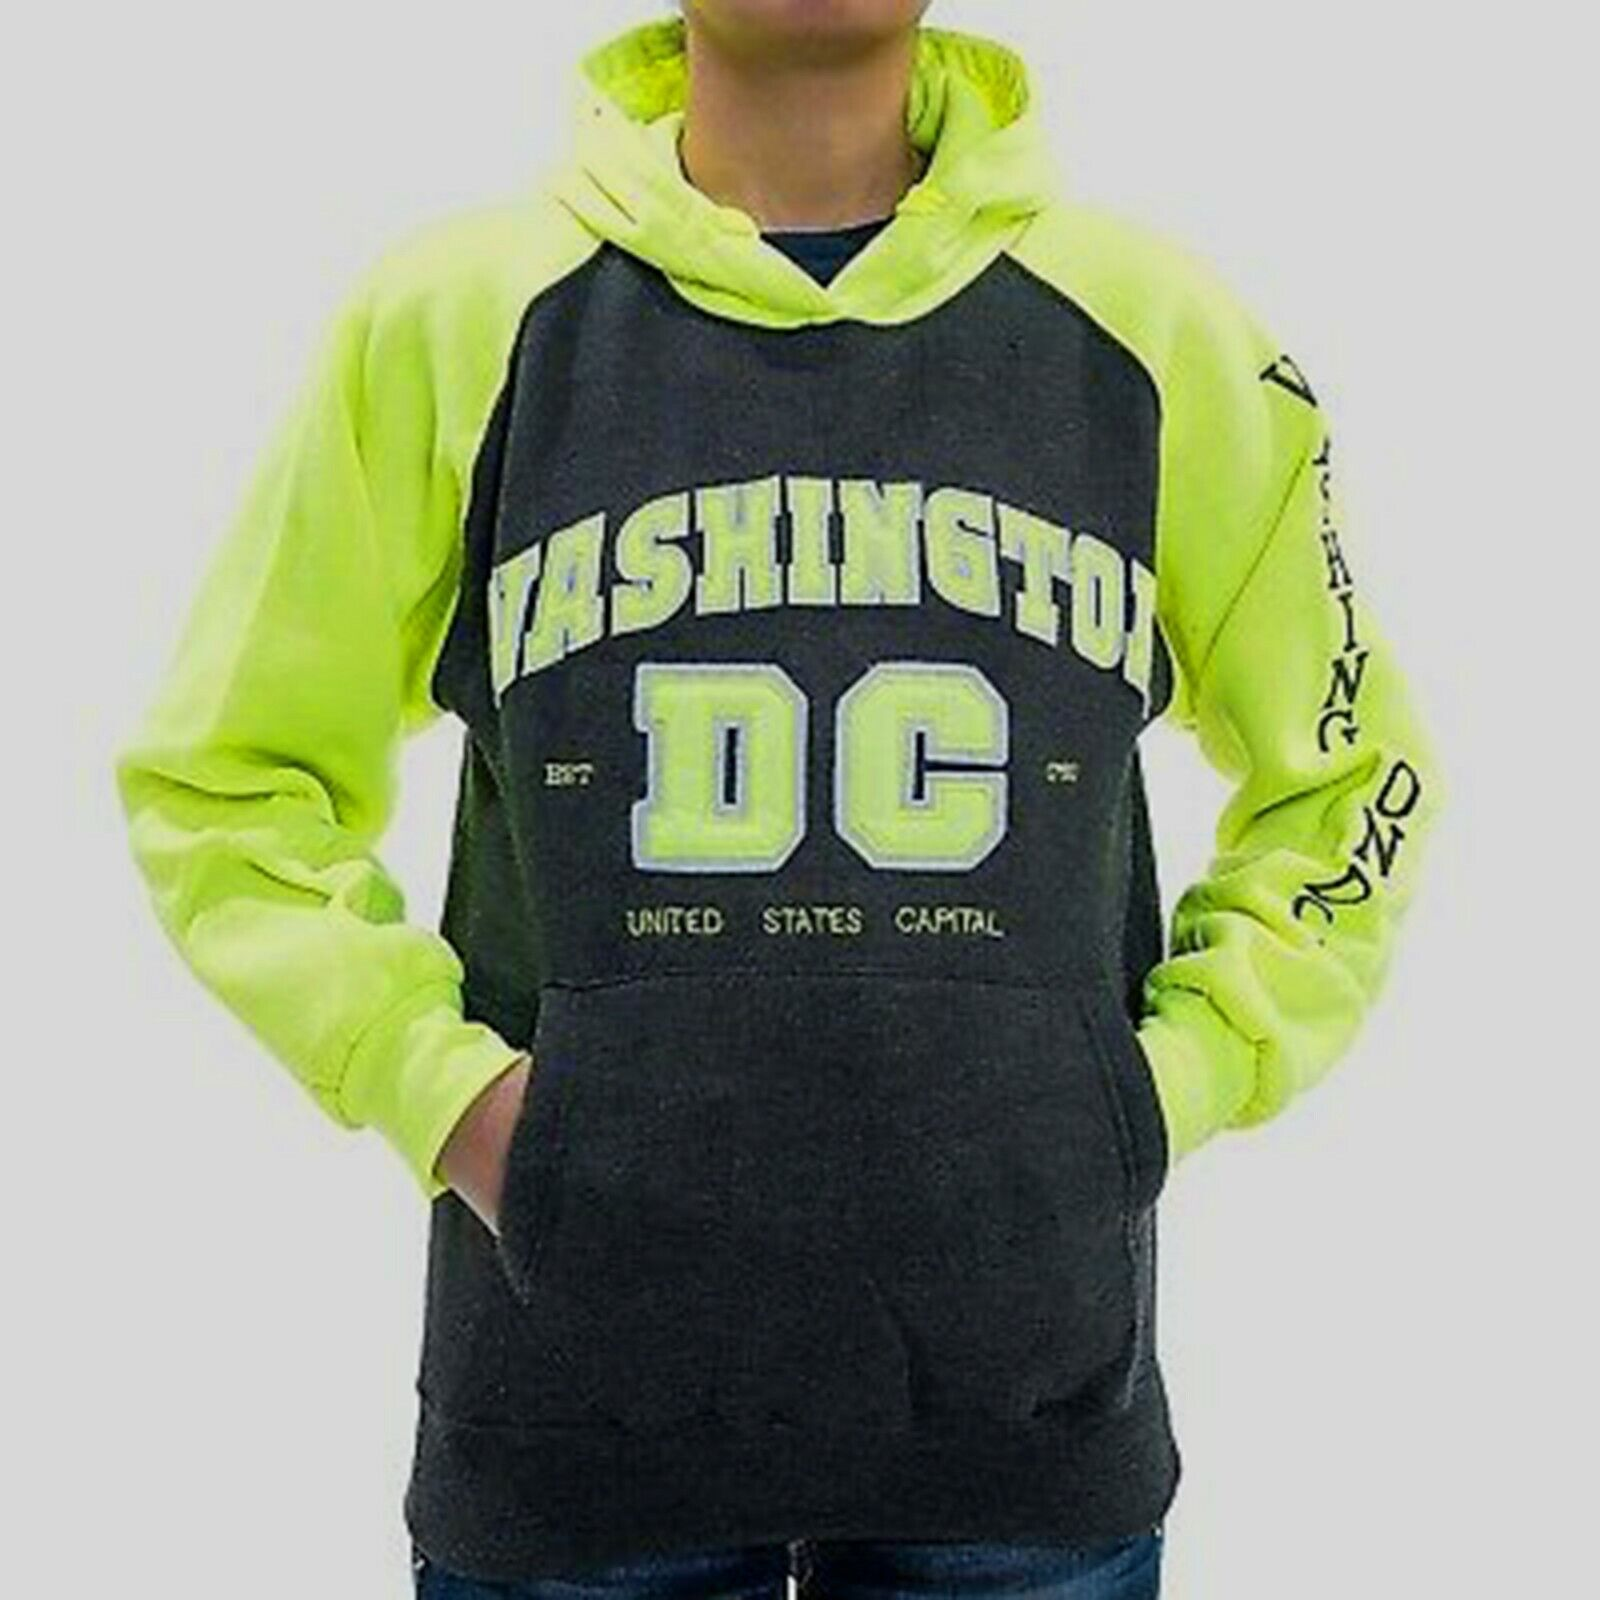 Washington DC Charcoal Yellow NEON Hoodie Sweatshirt Embroidered Letters Unisex